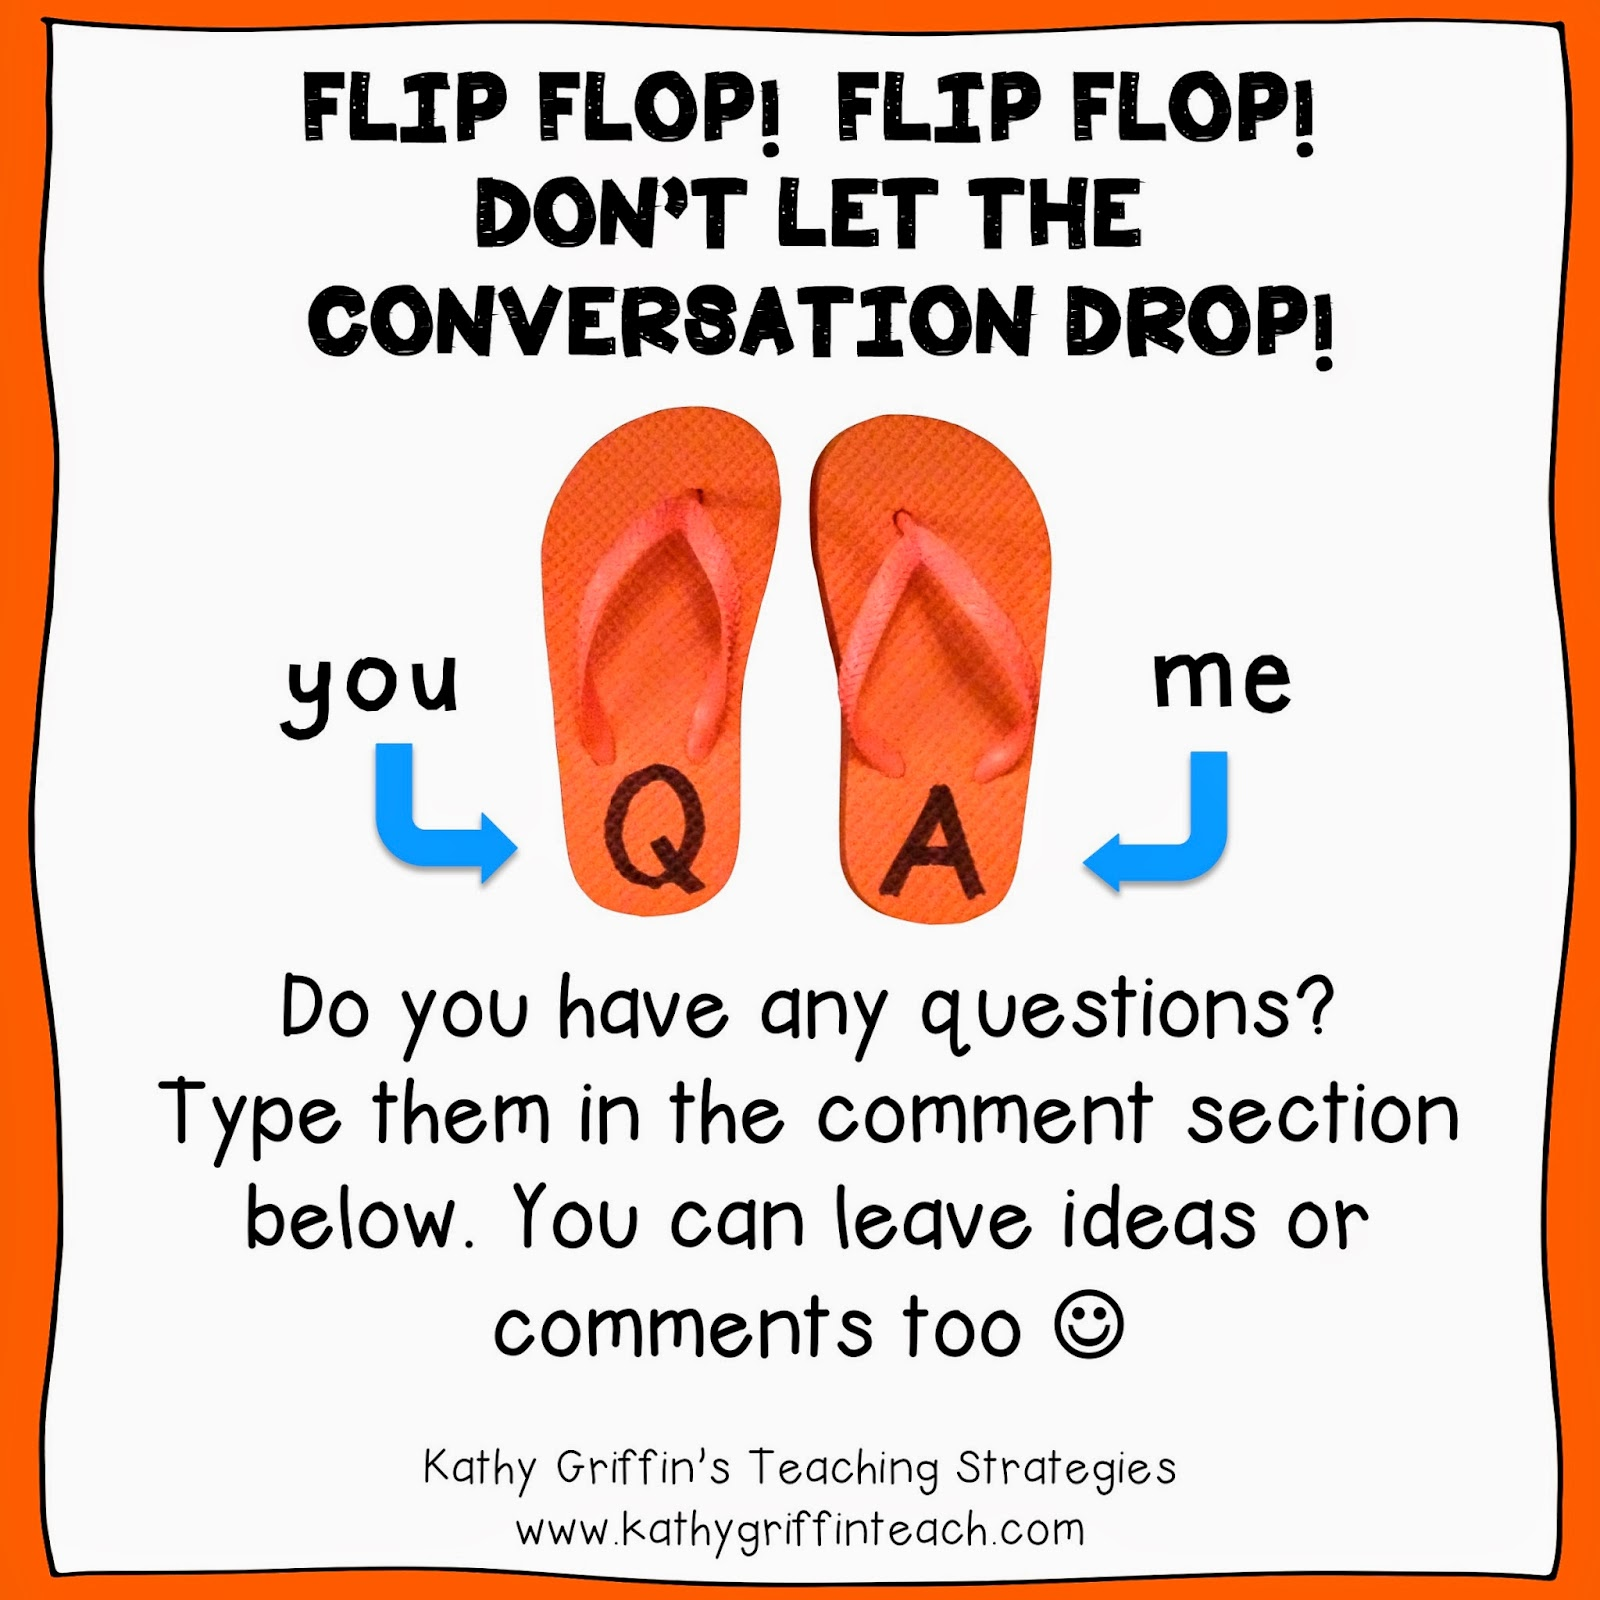 kathy griffin s teaching strategies teaching students to ask and if you liked this blog post please consider following me on face book or teachers pay teachers you can also sign up by email to receive